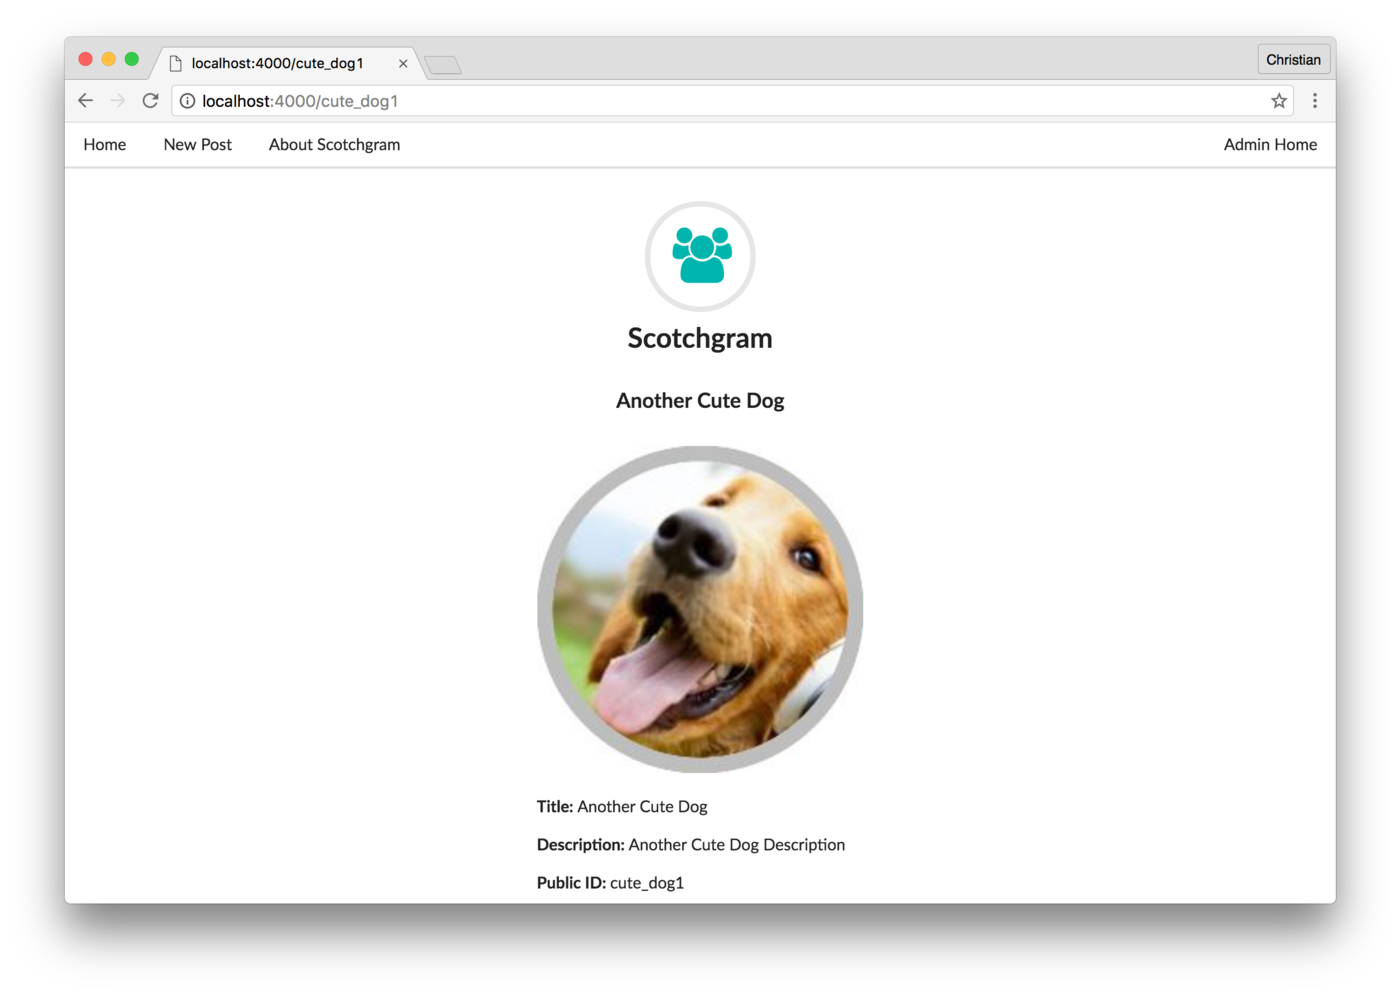 Build the Back-End For Your Own Instagram-style App with